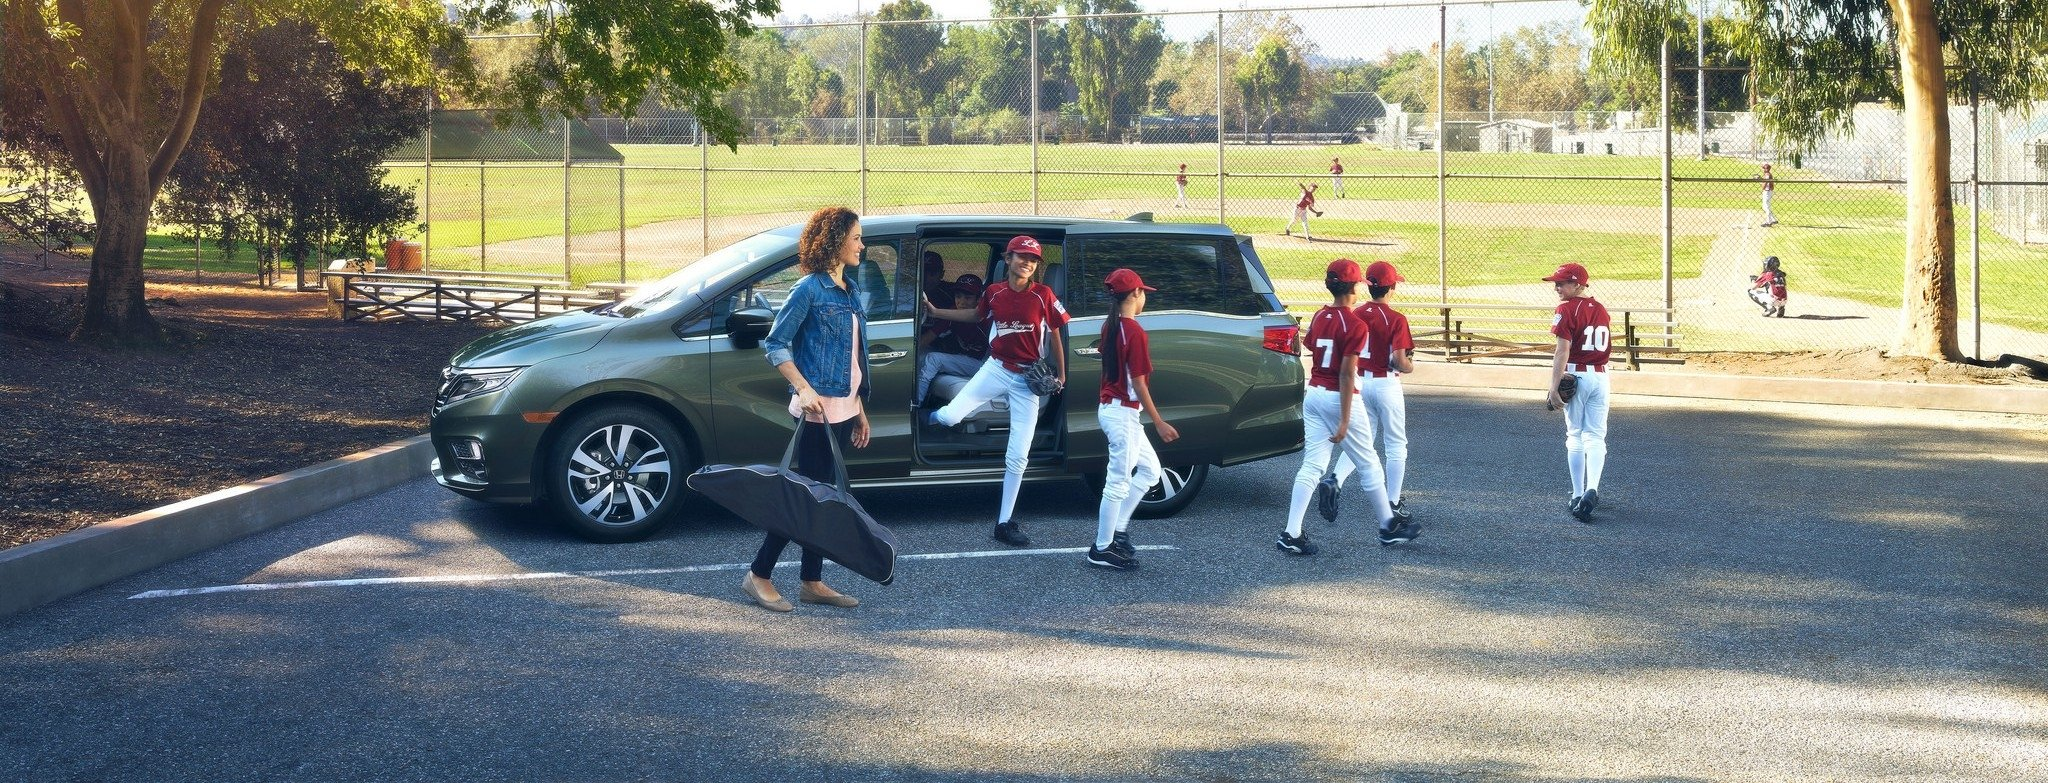 2018 Honda Odyssey baseball team - Milwaukee, WI